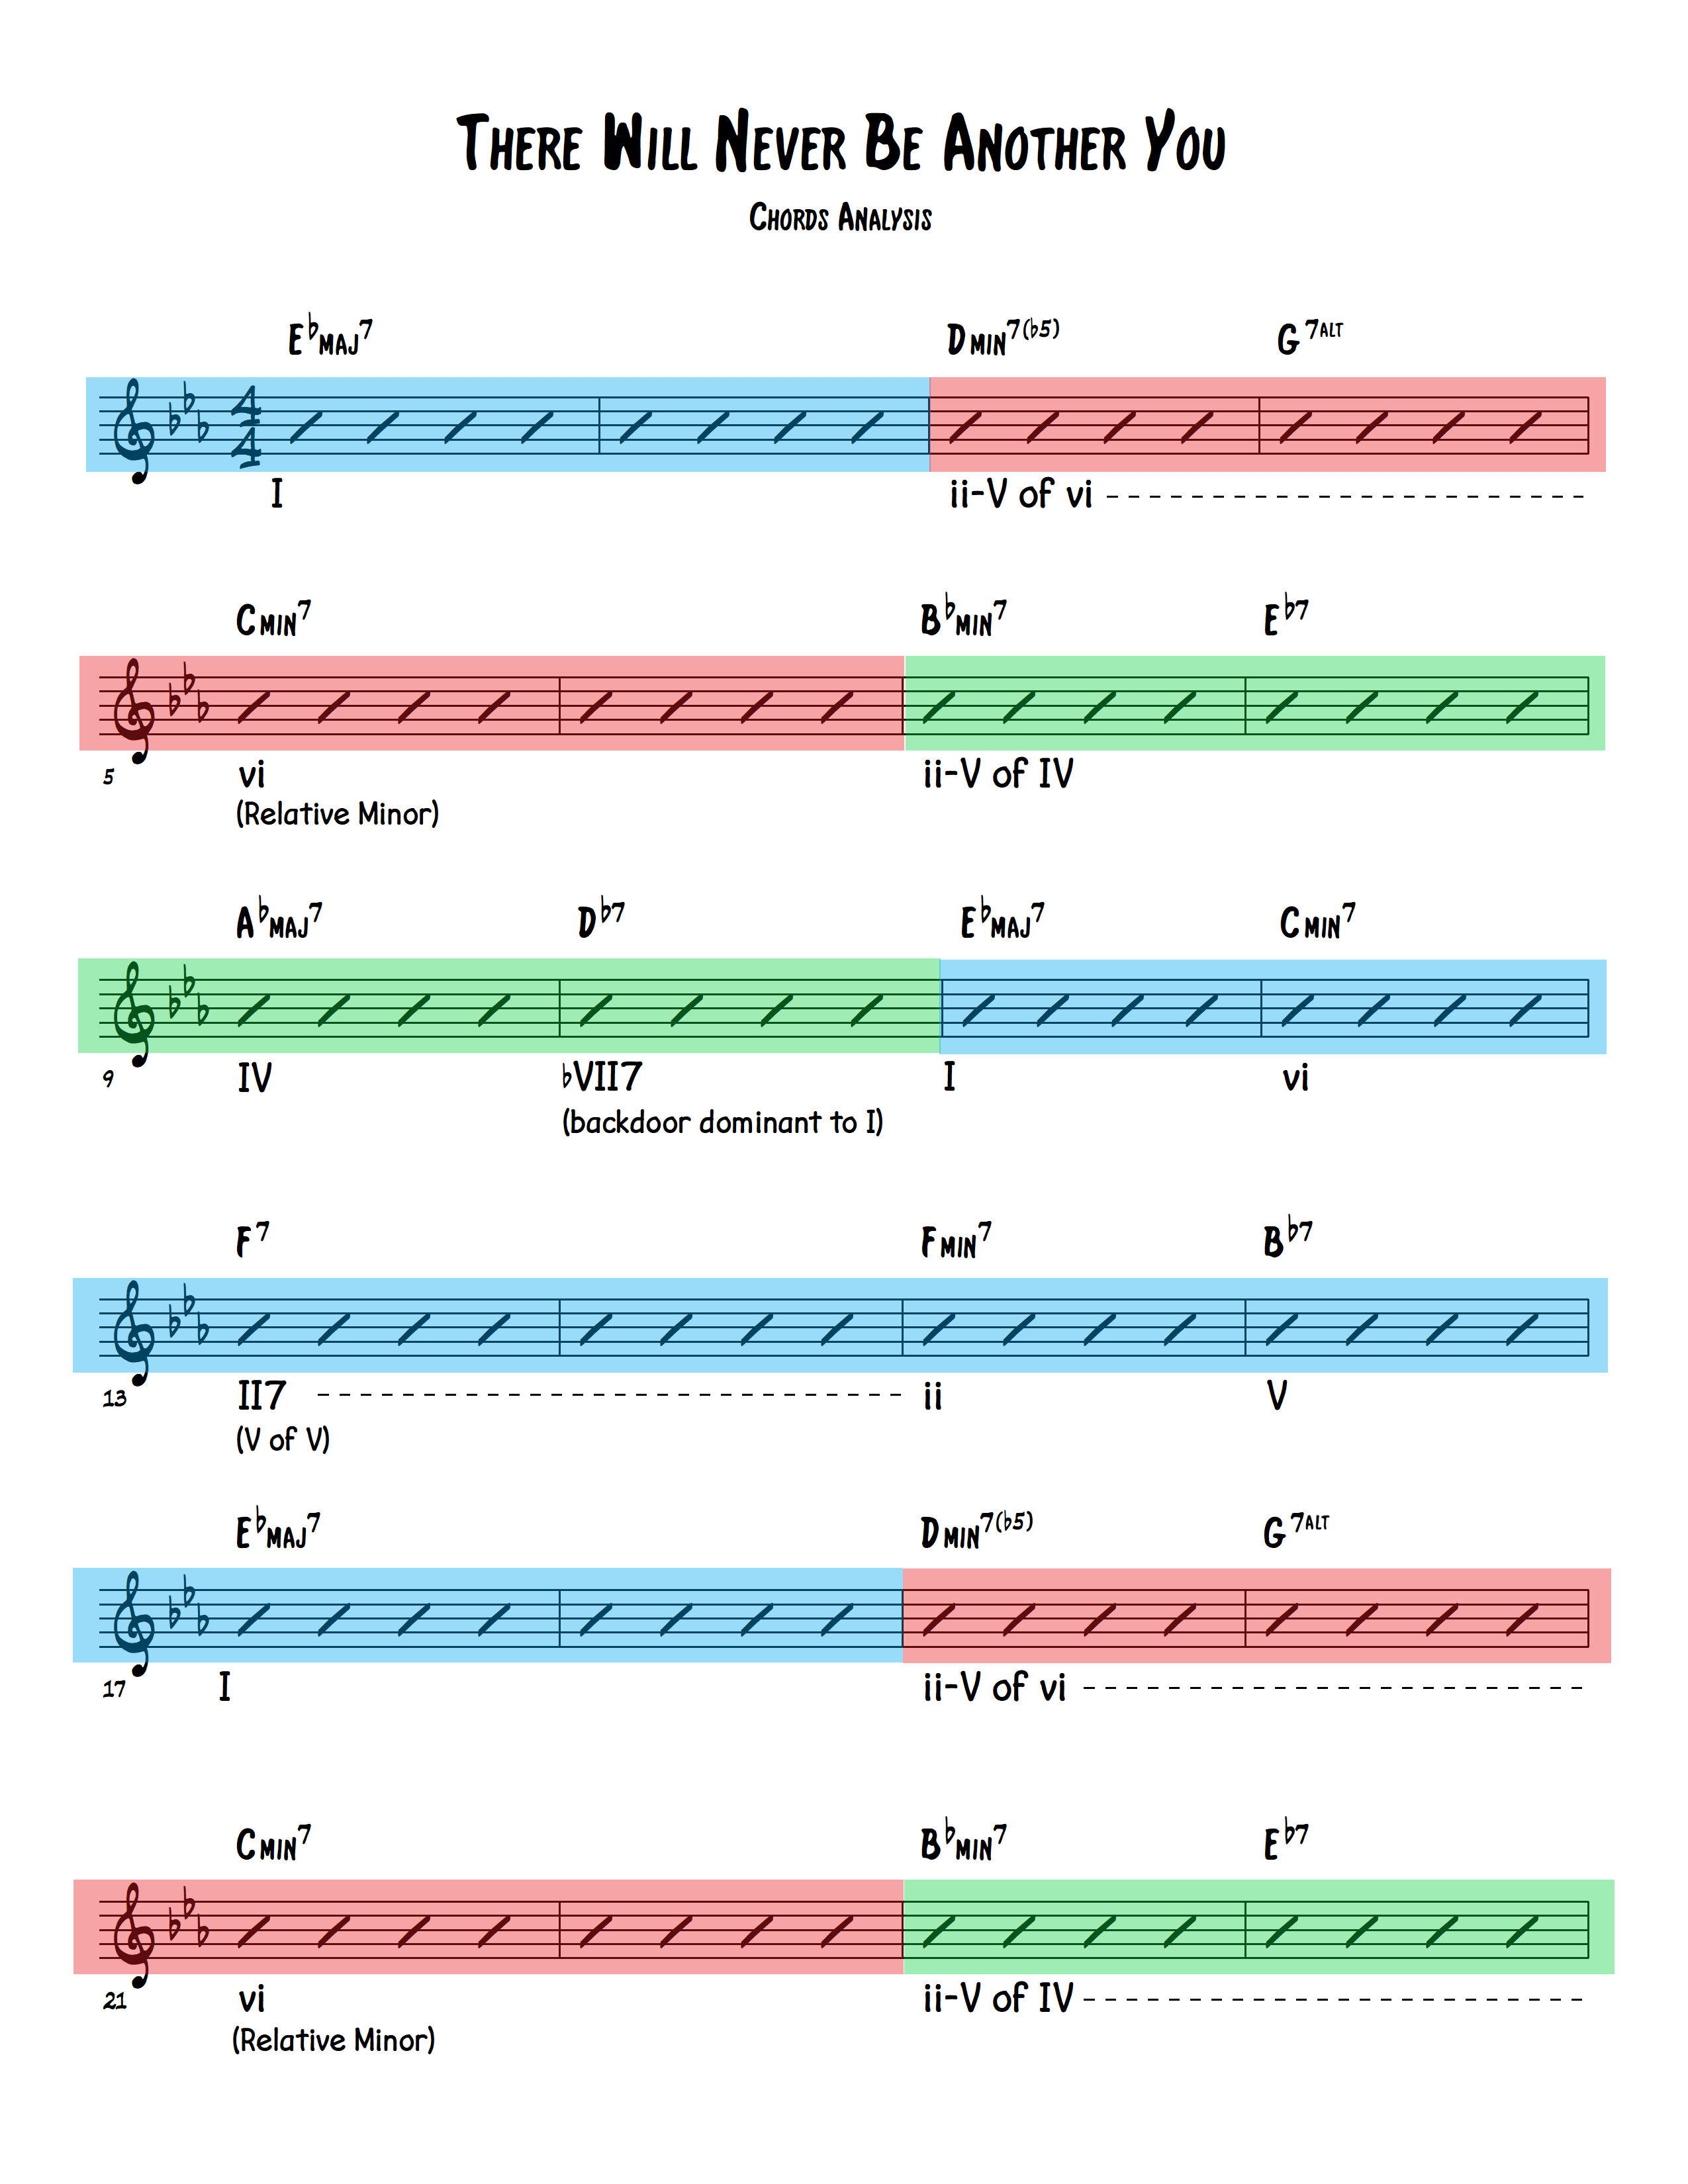 There Will Never Be Another You (Chords Analysis 1)